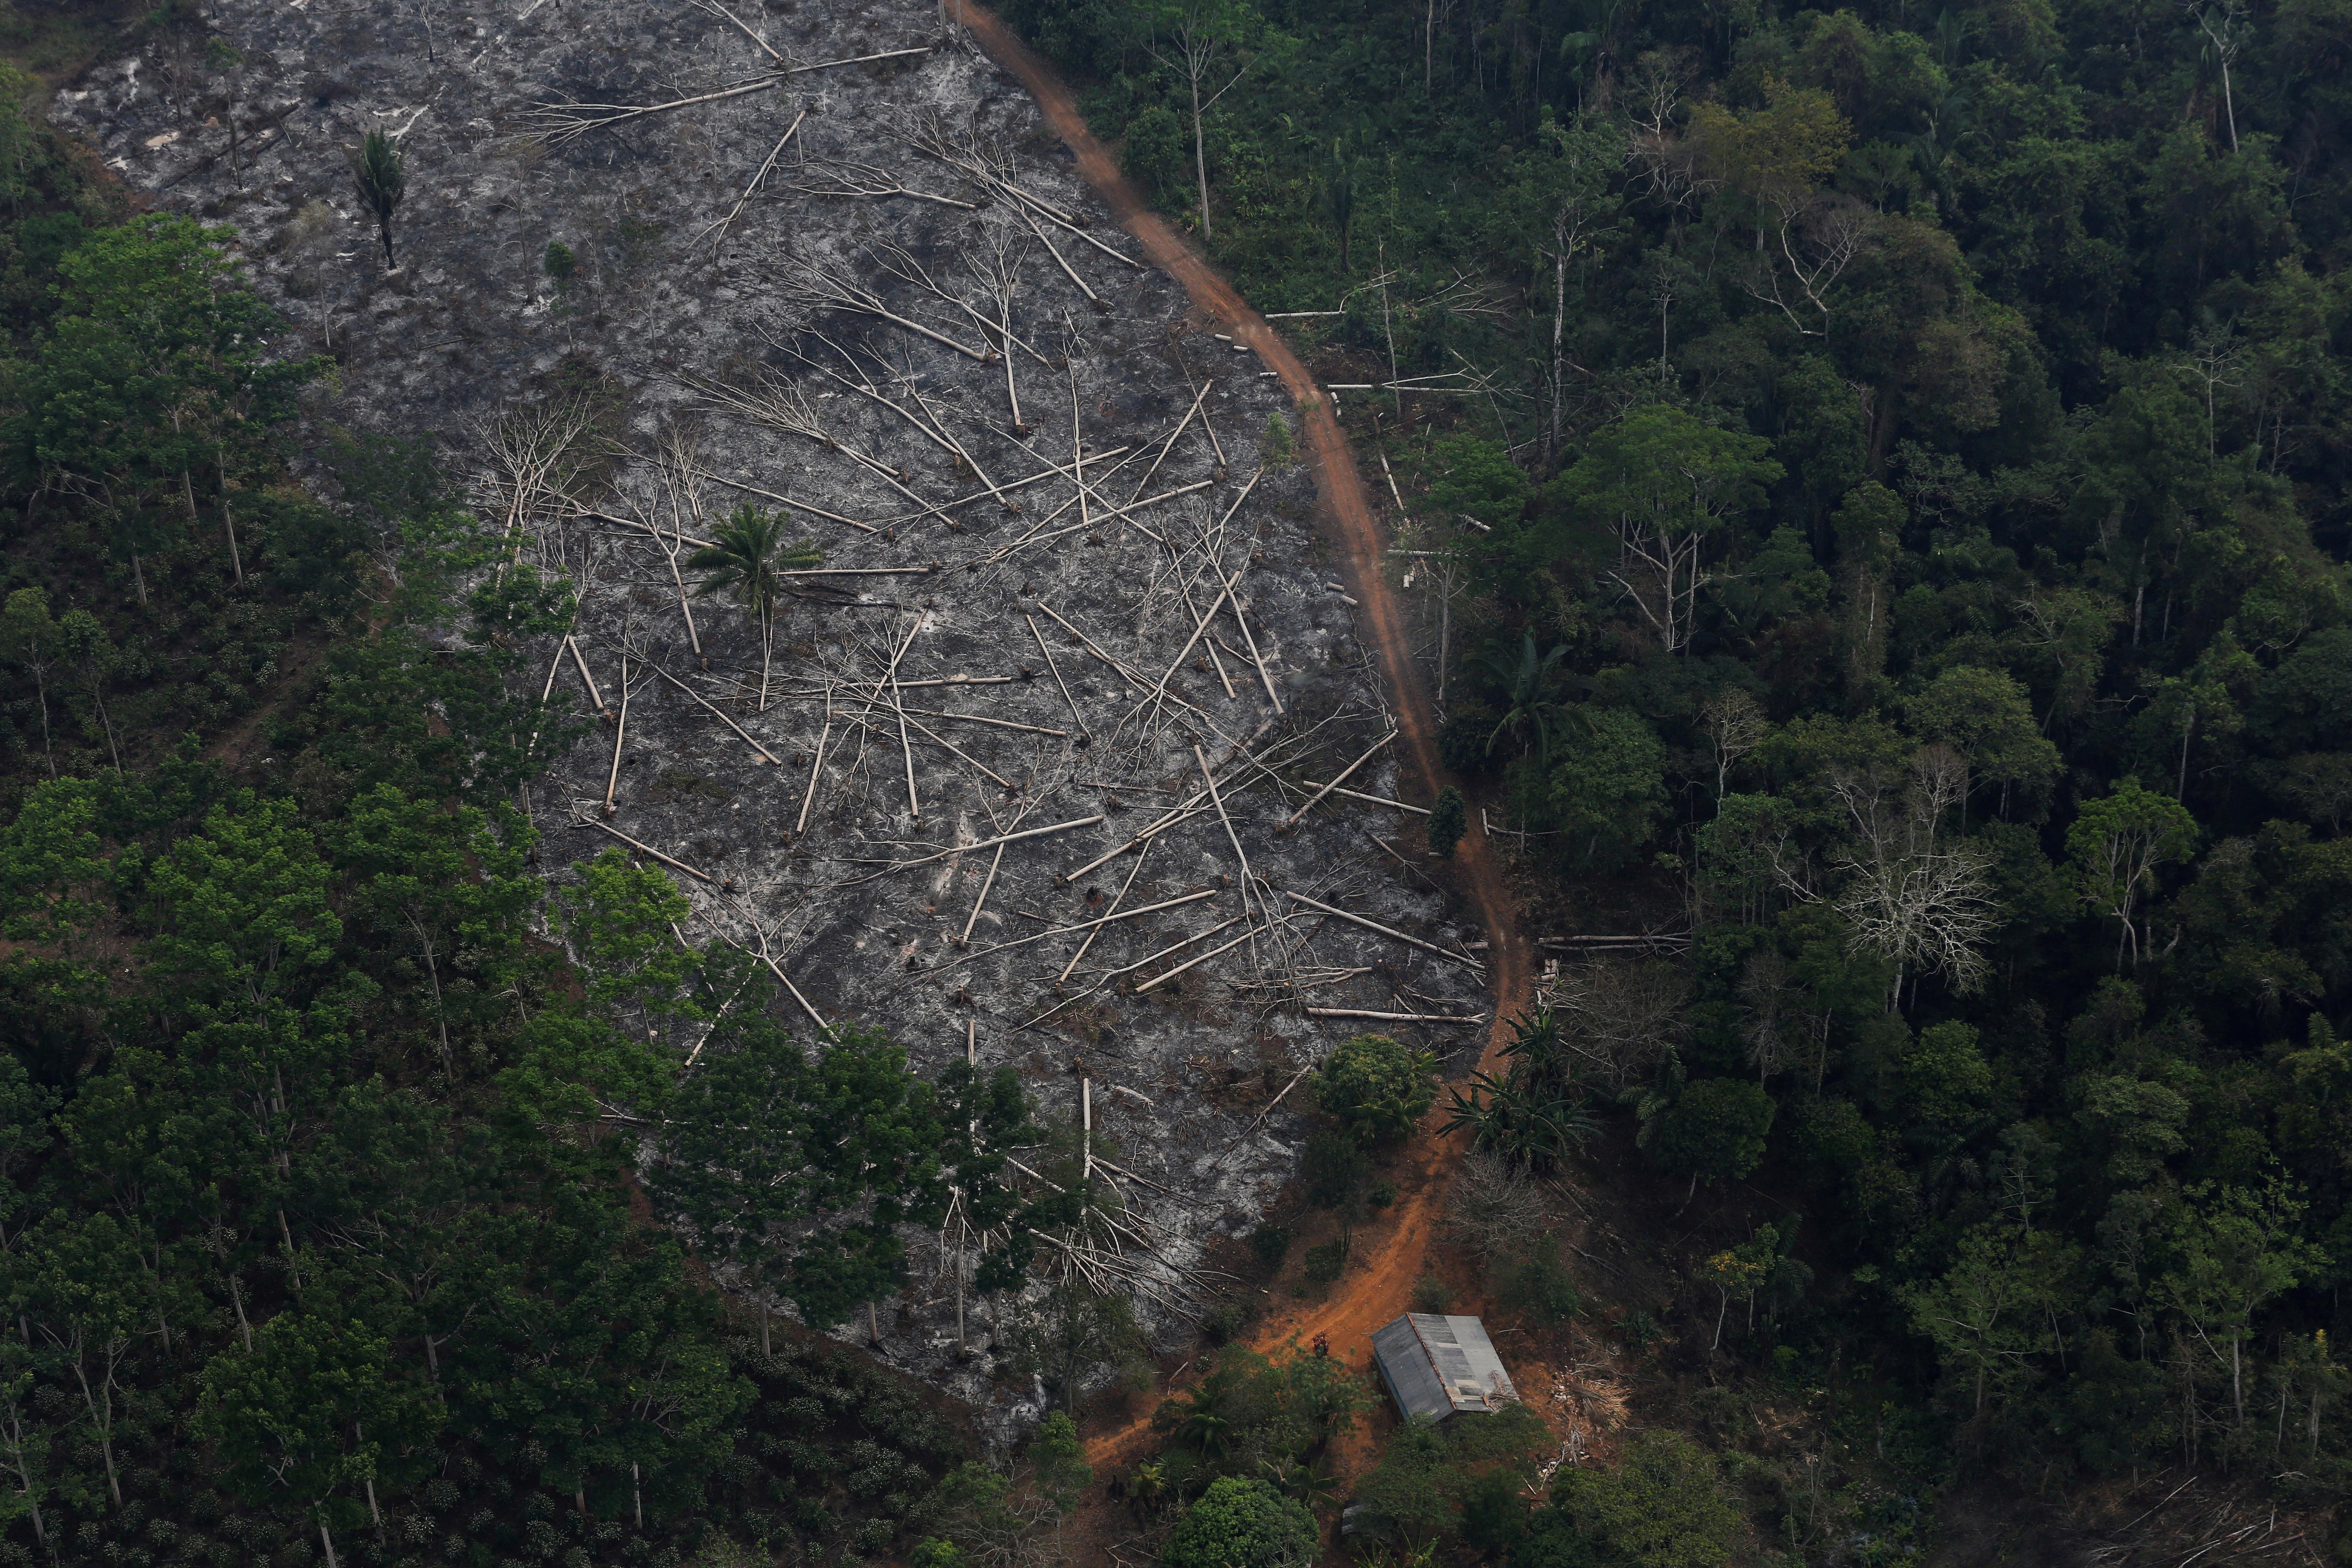 Brazil space research chief to leave job after Bolsonaro deforestation spat